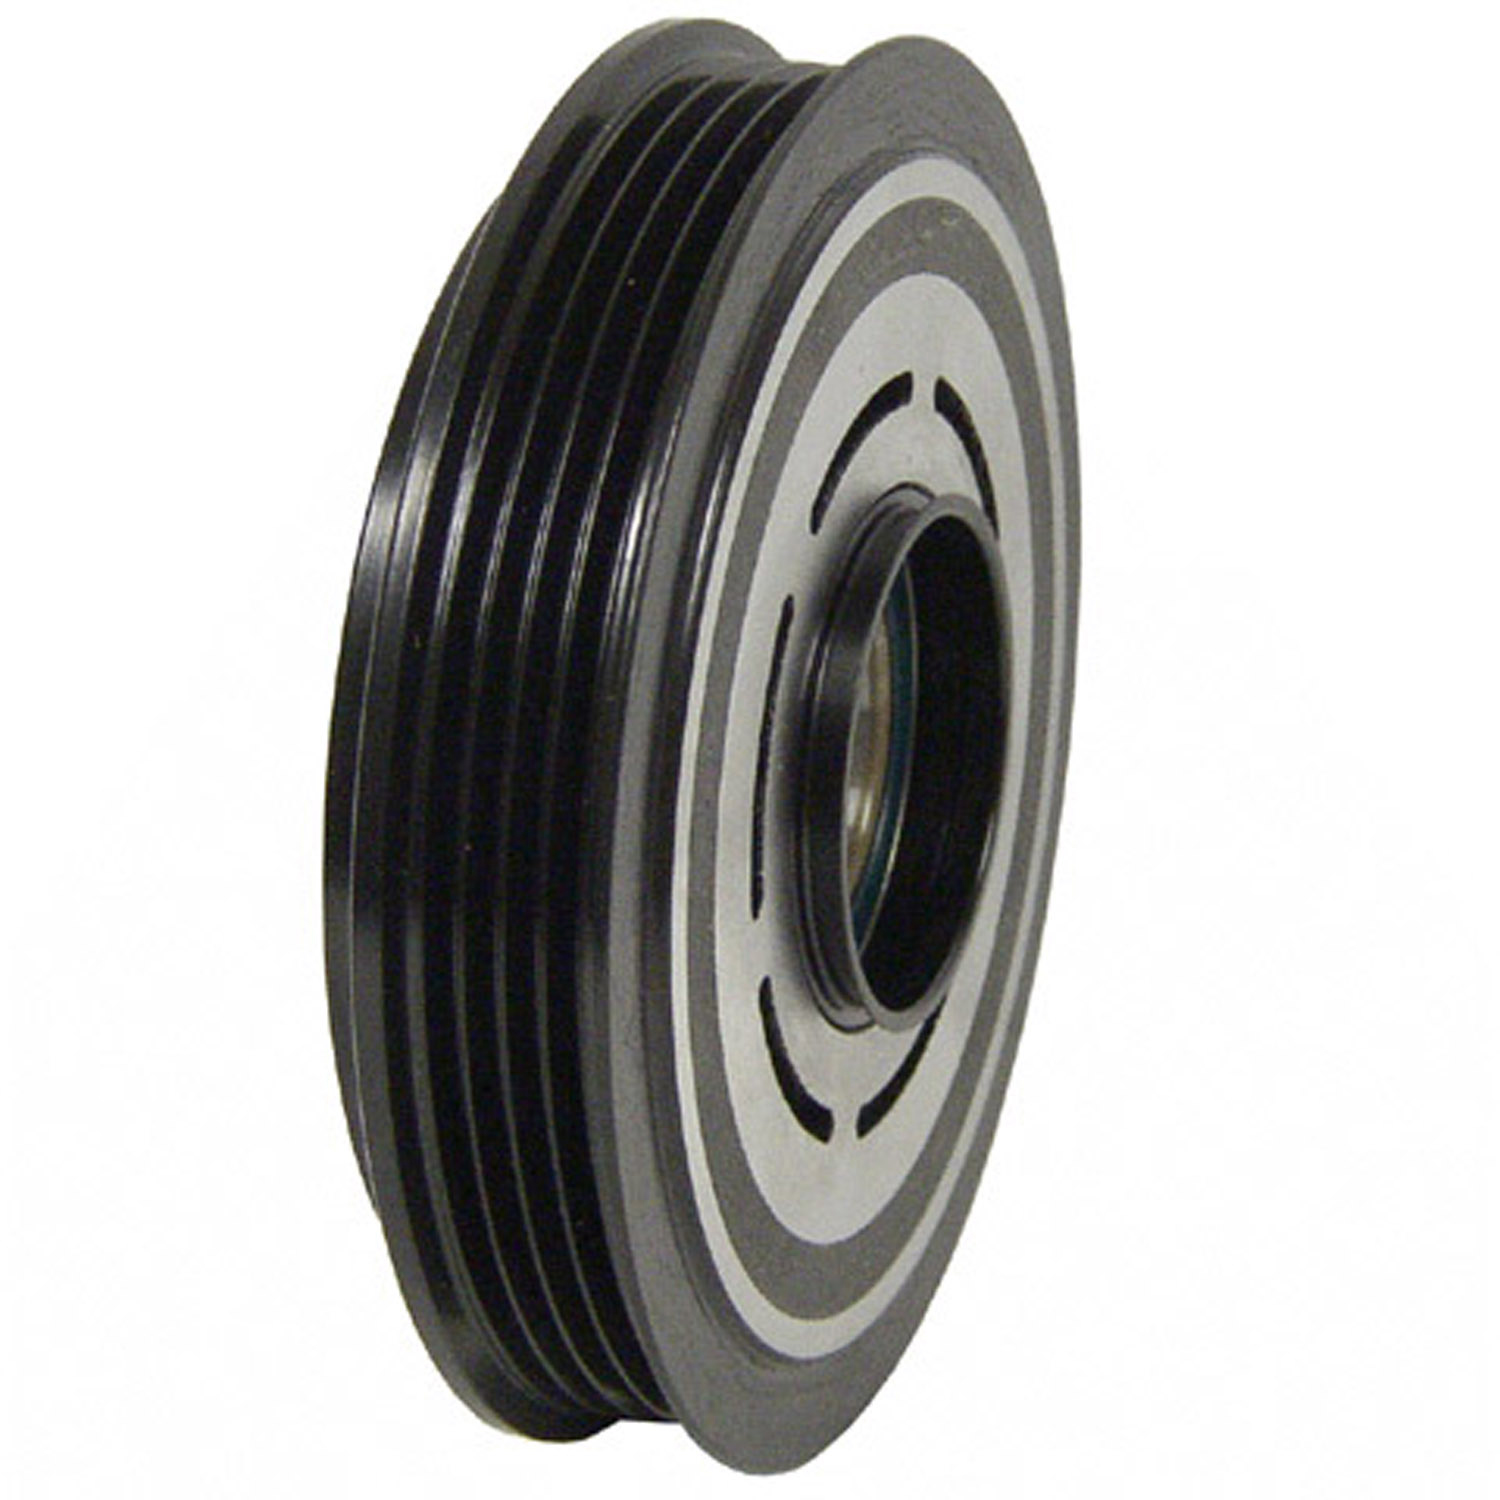 Clutch Pulley PULLEY FOR CL 1607C